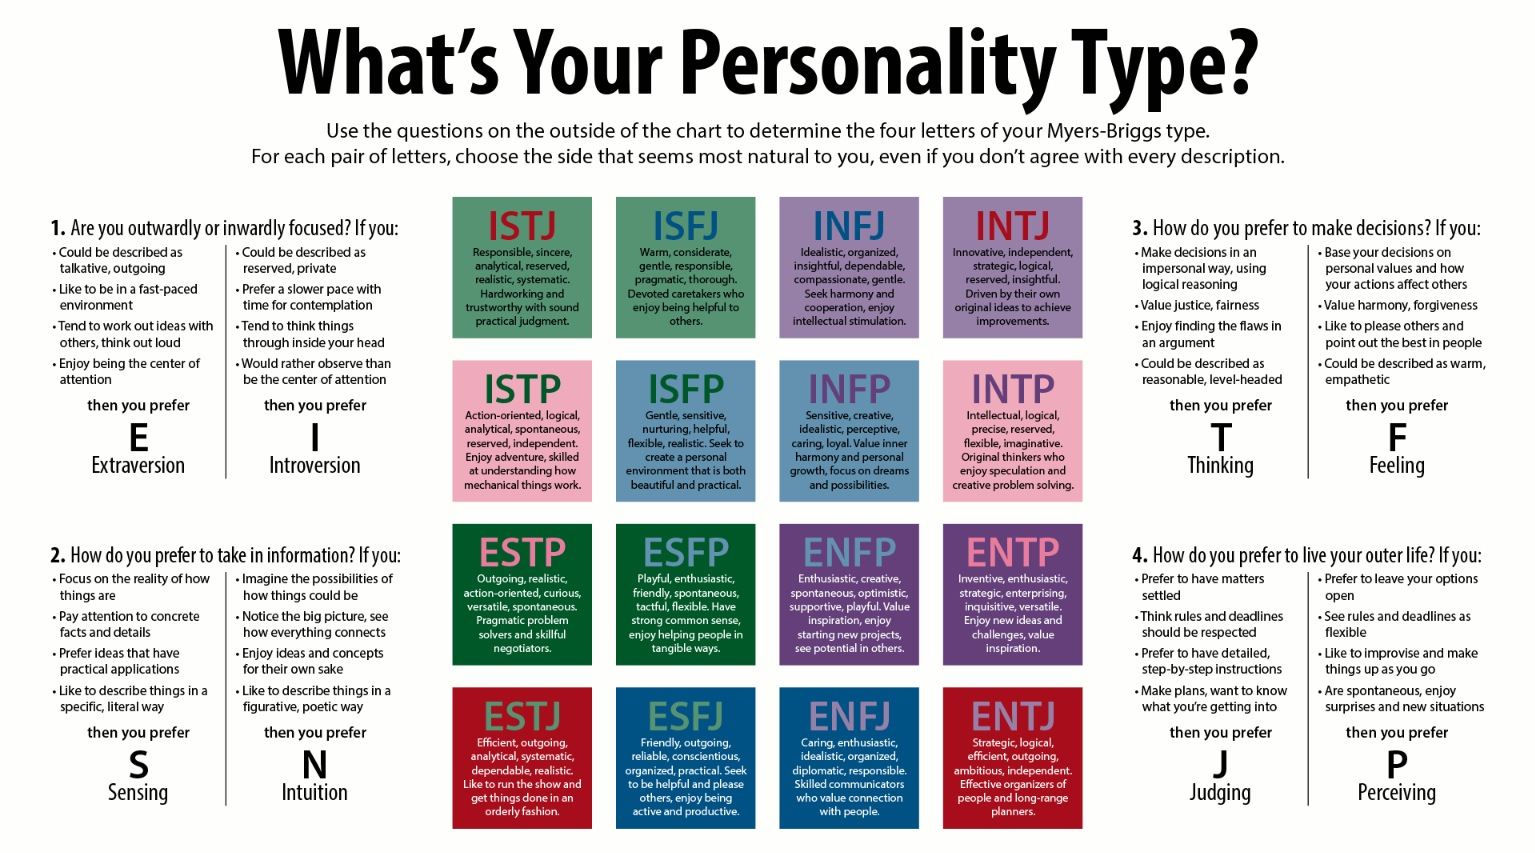 infj personality test chart type tests personalities character hippie hedgehog types mbti traits testing name inventory analysis briggs myers which